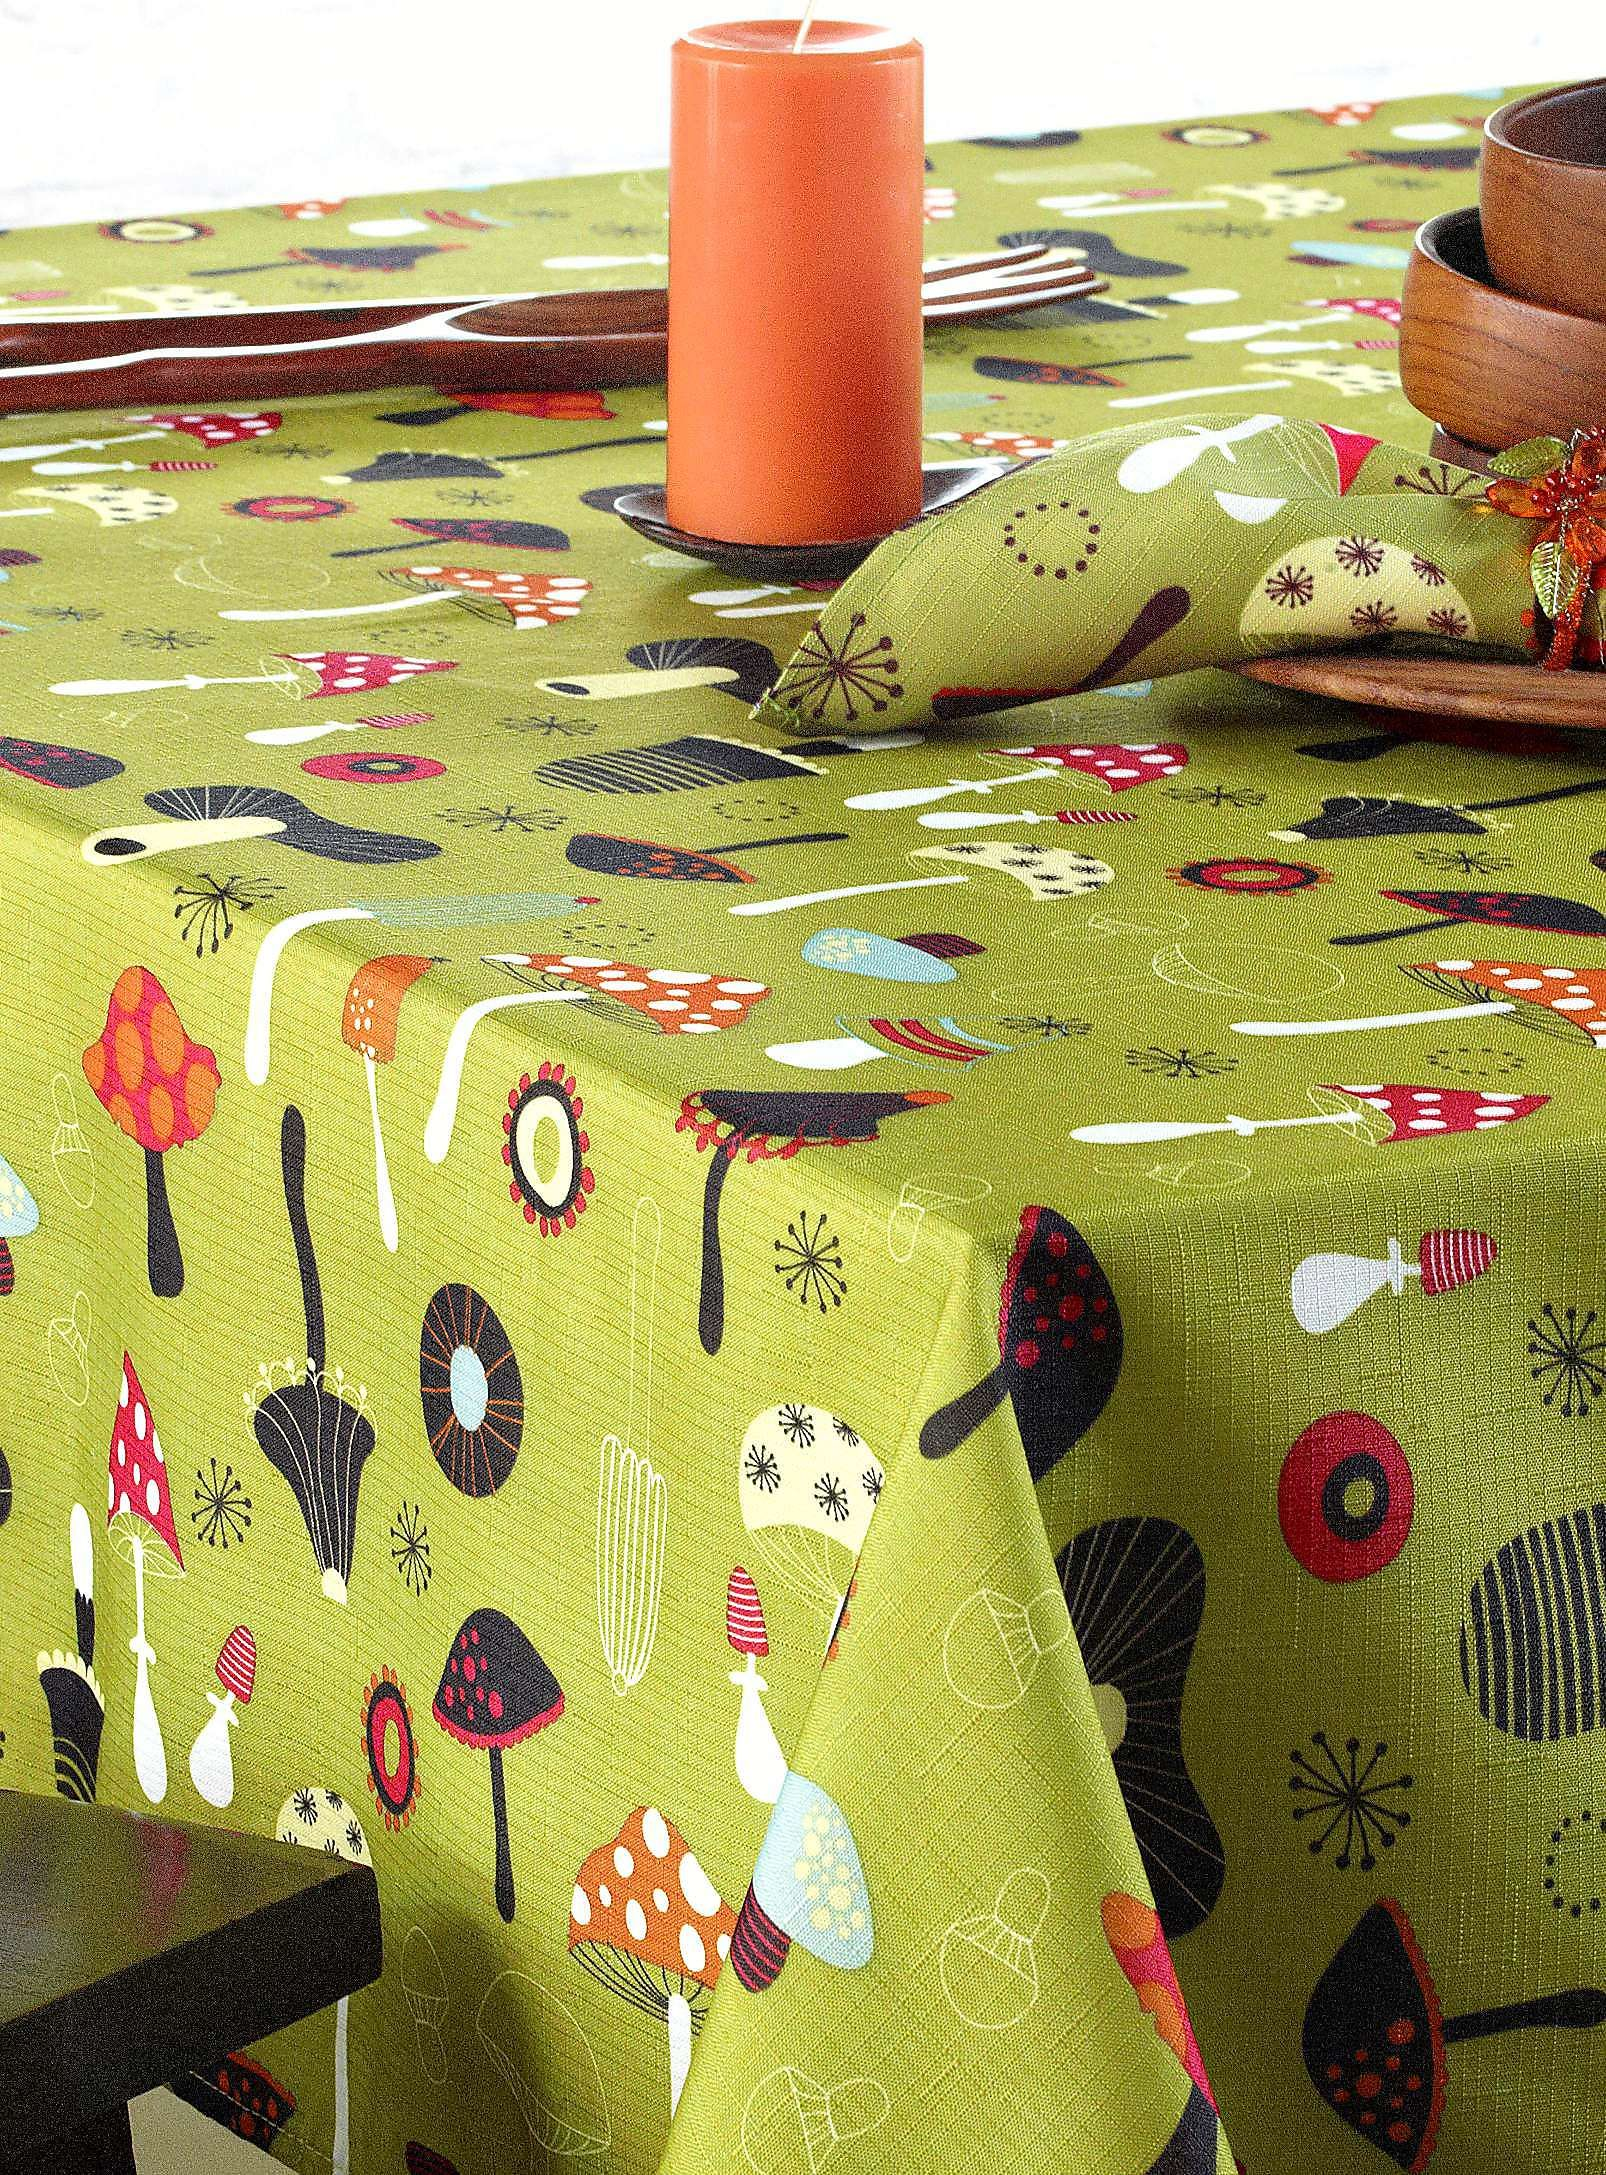 Gentil Funky Mushroom Tablecloth   Tablecloths | Simons